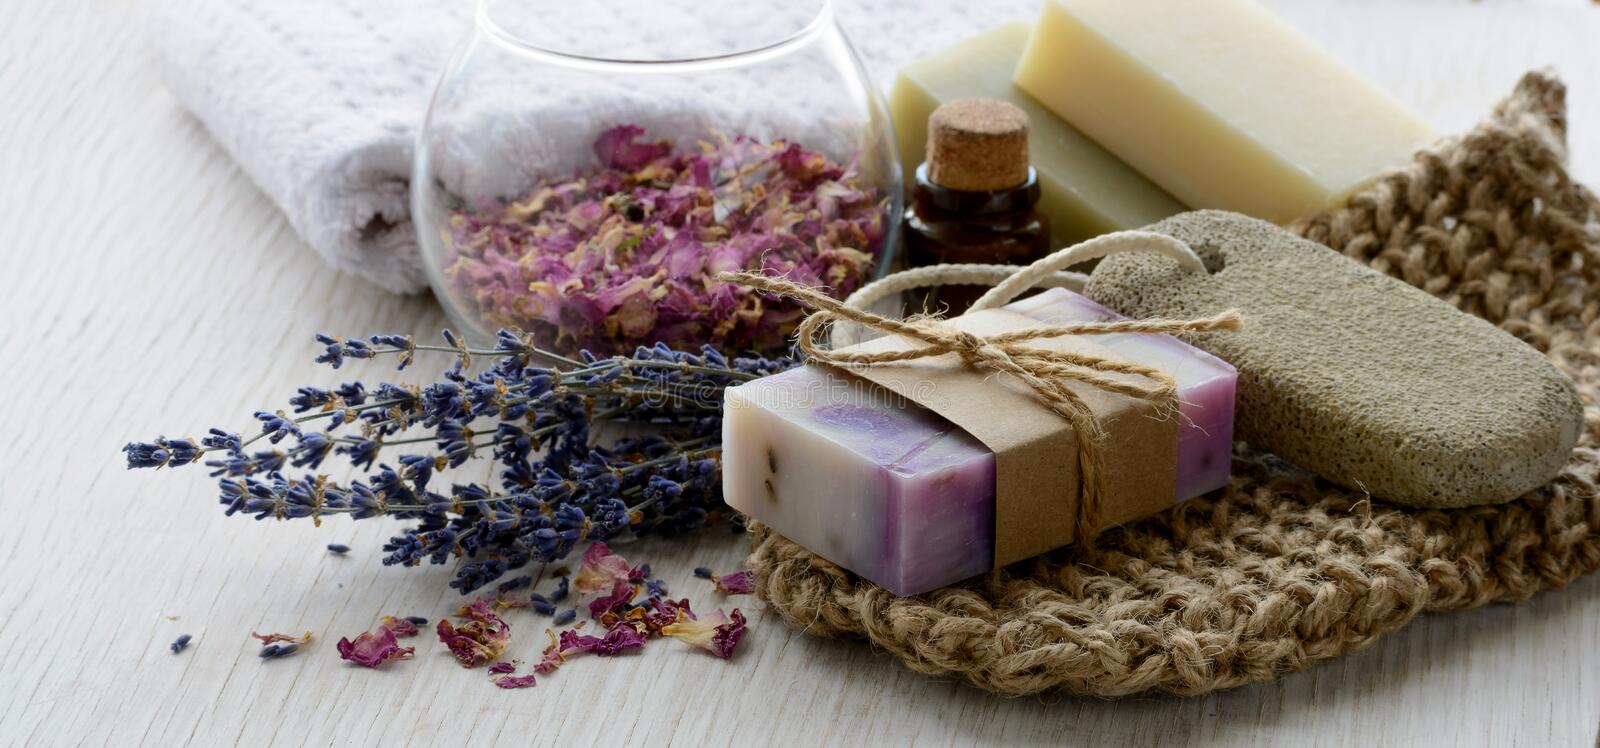 Handmade Soap With Bath And Spa Accessories On White Wood Background ...